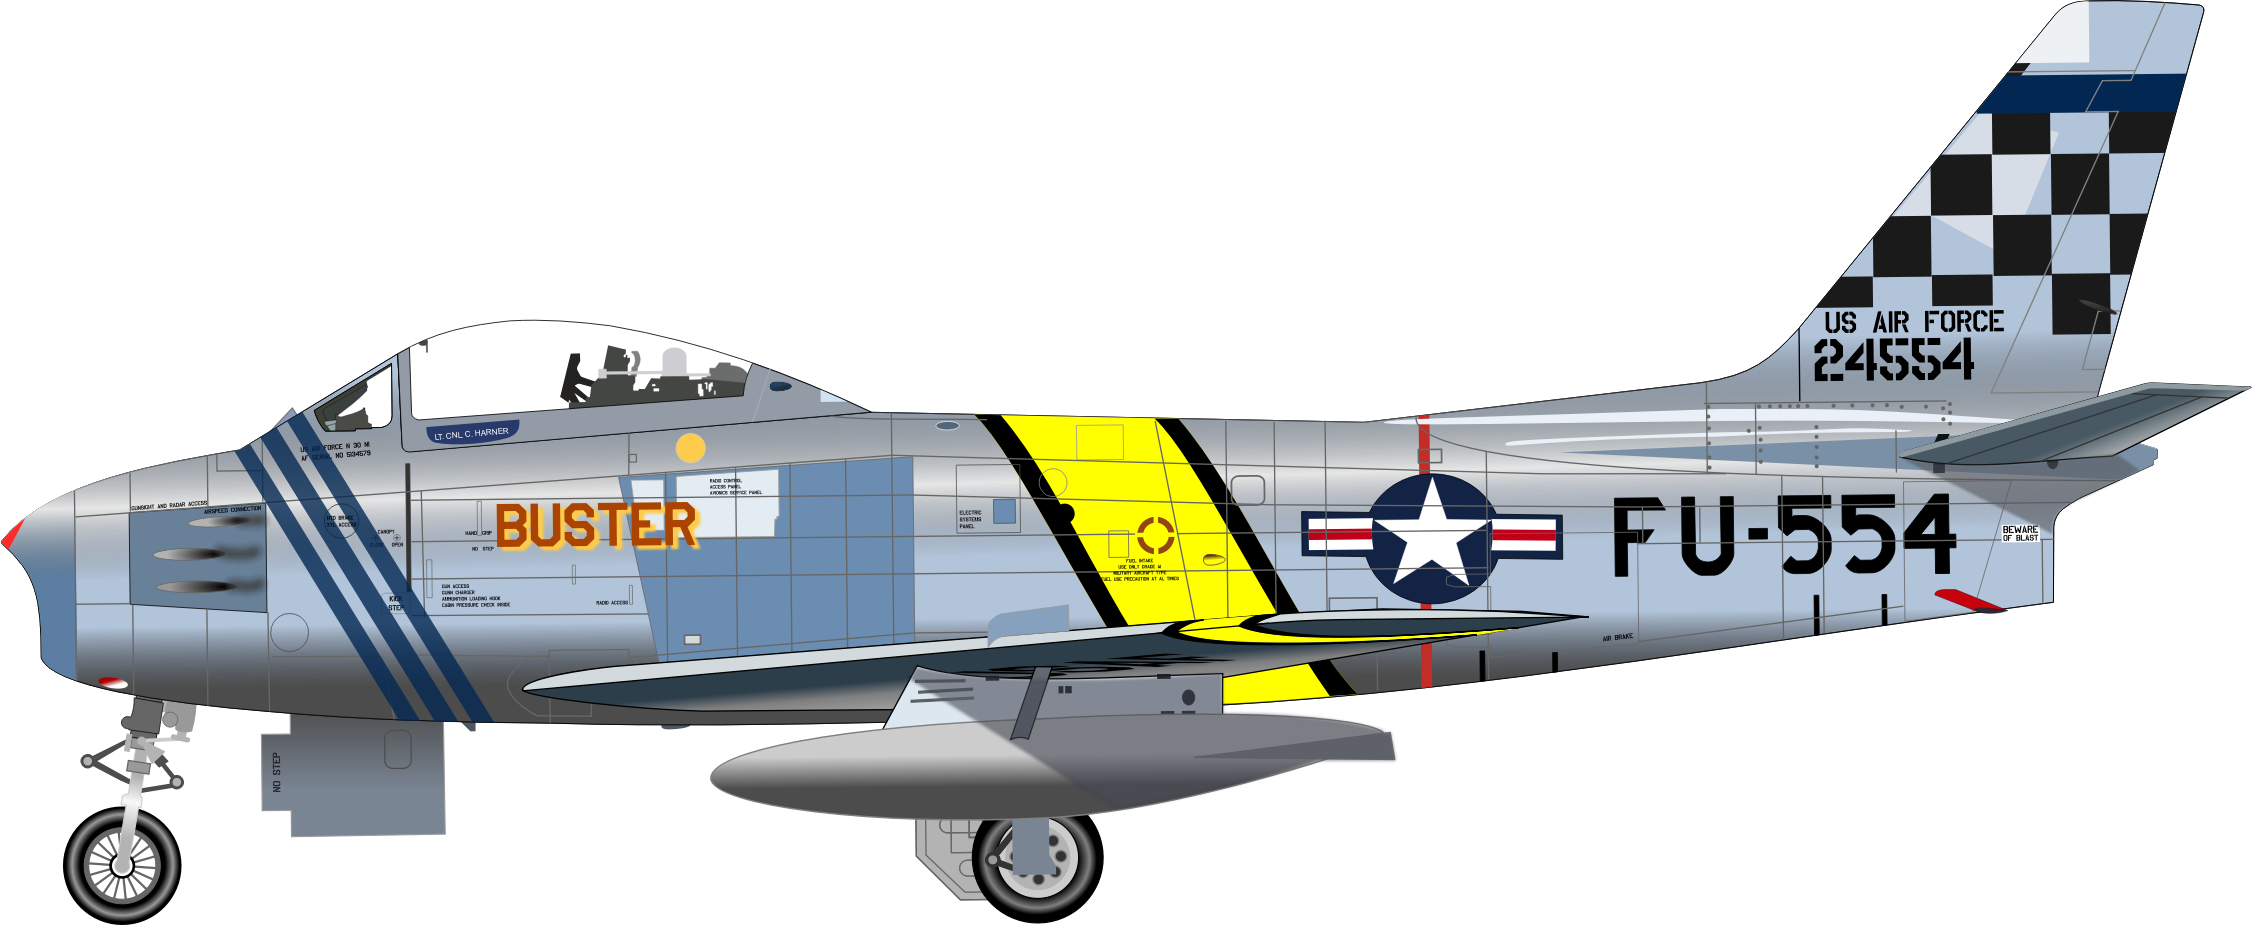 Jet clipart army plane Others Fighter Inspiration and Cliparts